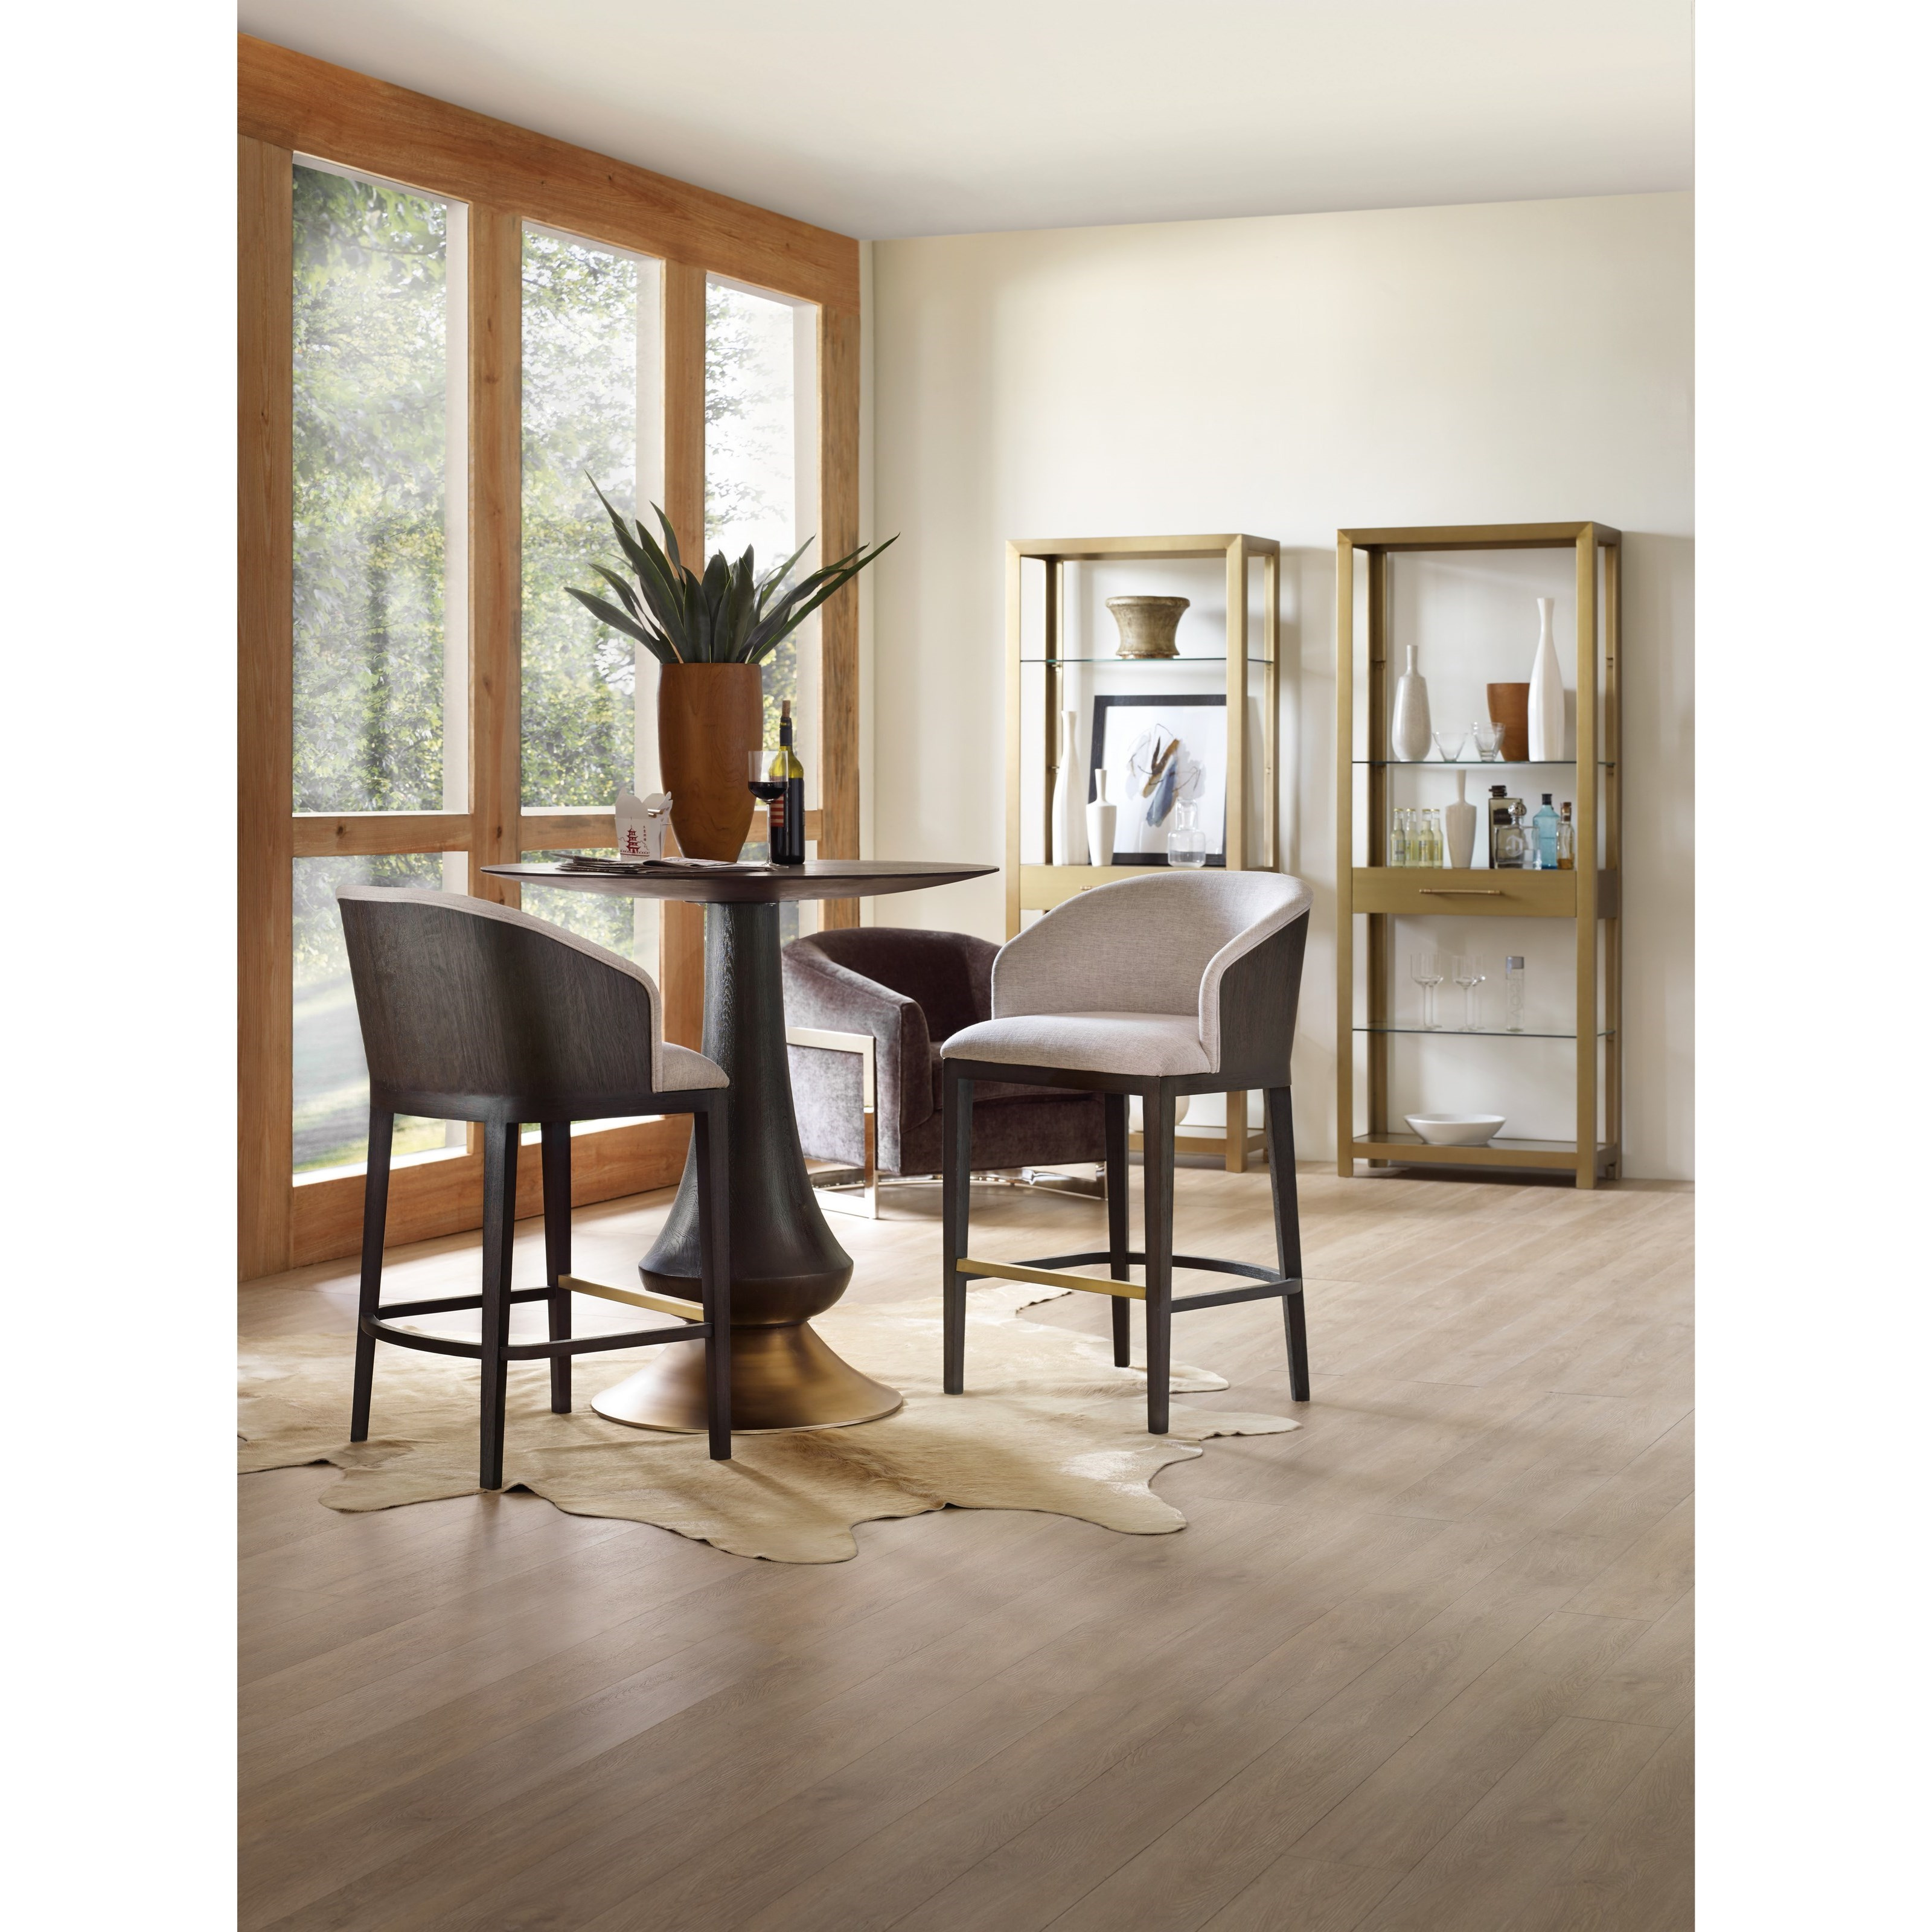 modern pub table by hooker furniture  wolf and gardiner wolf  - modern pub table